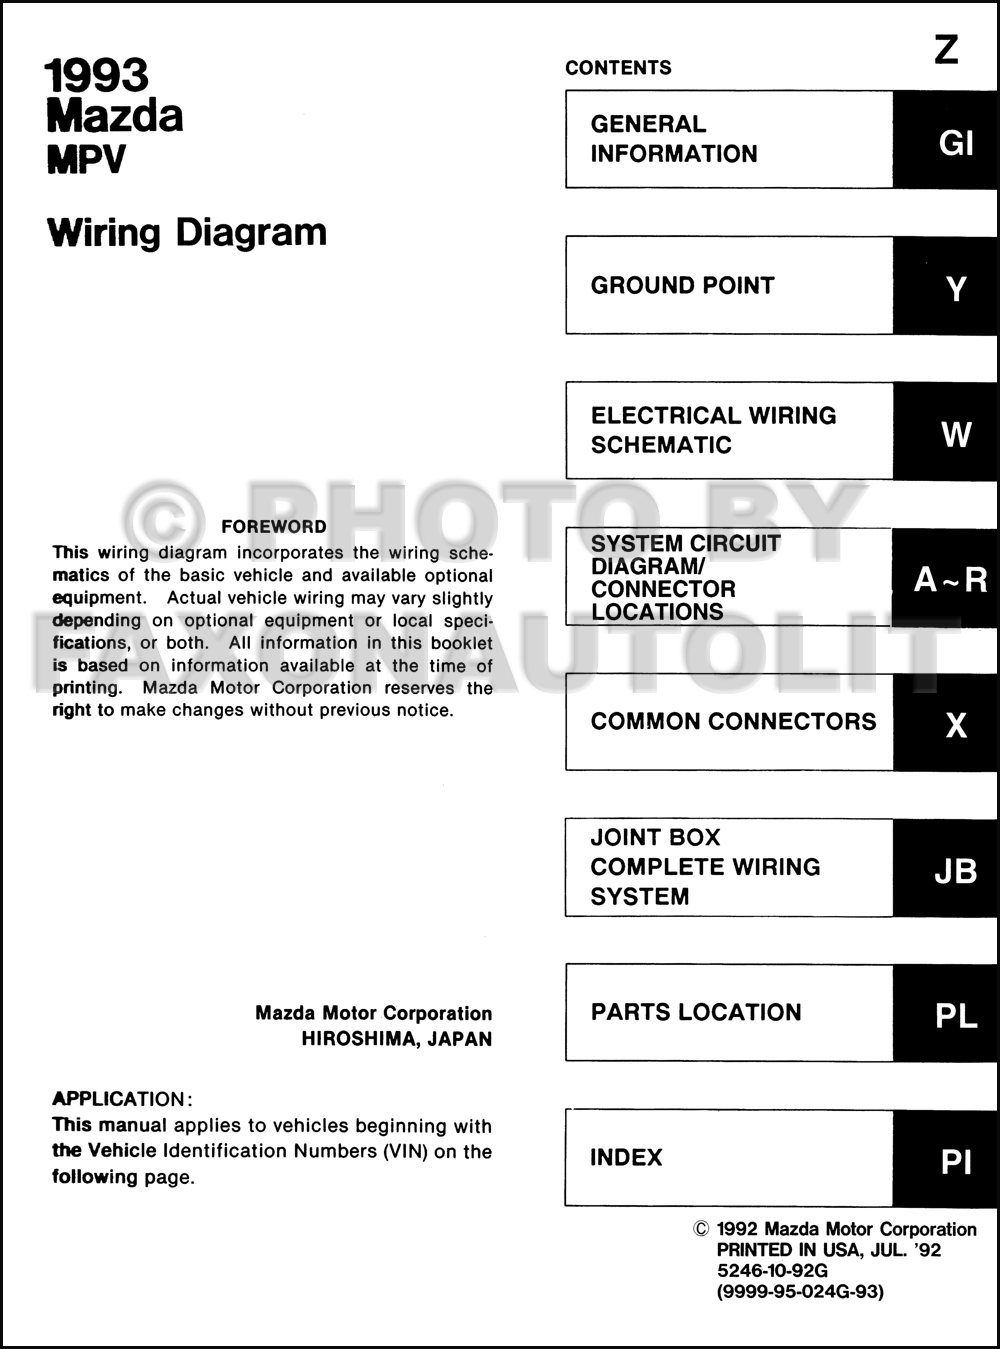 1993 Mazda Mpv Wiring Diagram Manual Original For Vans